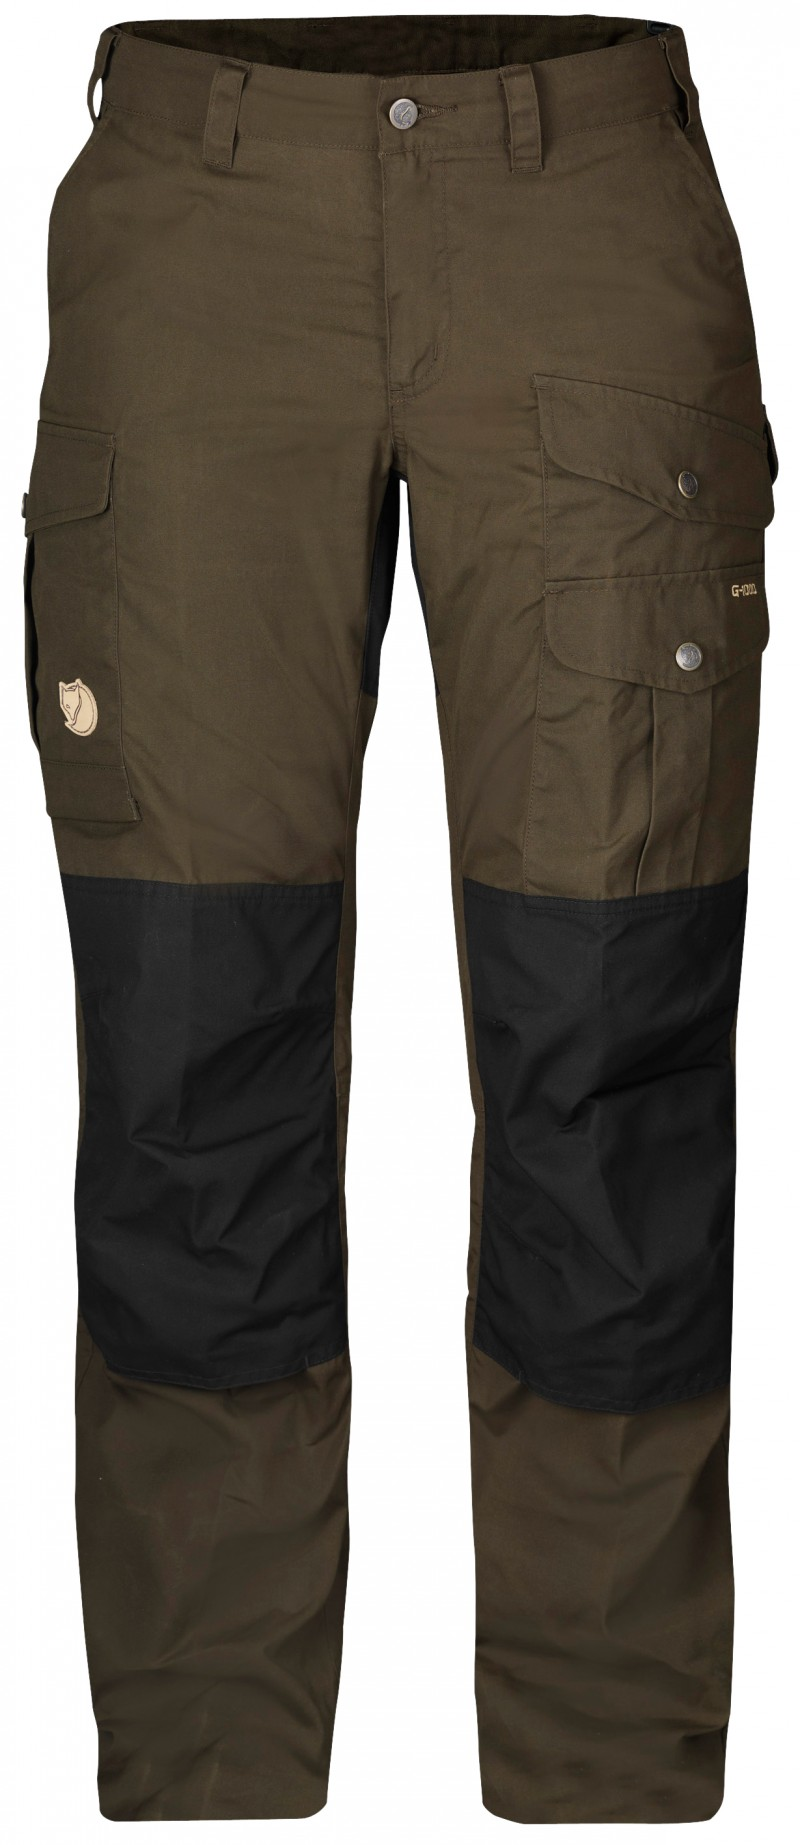 FjallRaven Barents Pro Hydr.Trousers W. Dark Olive-30